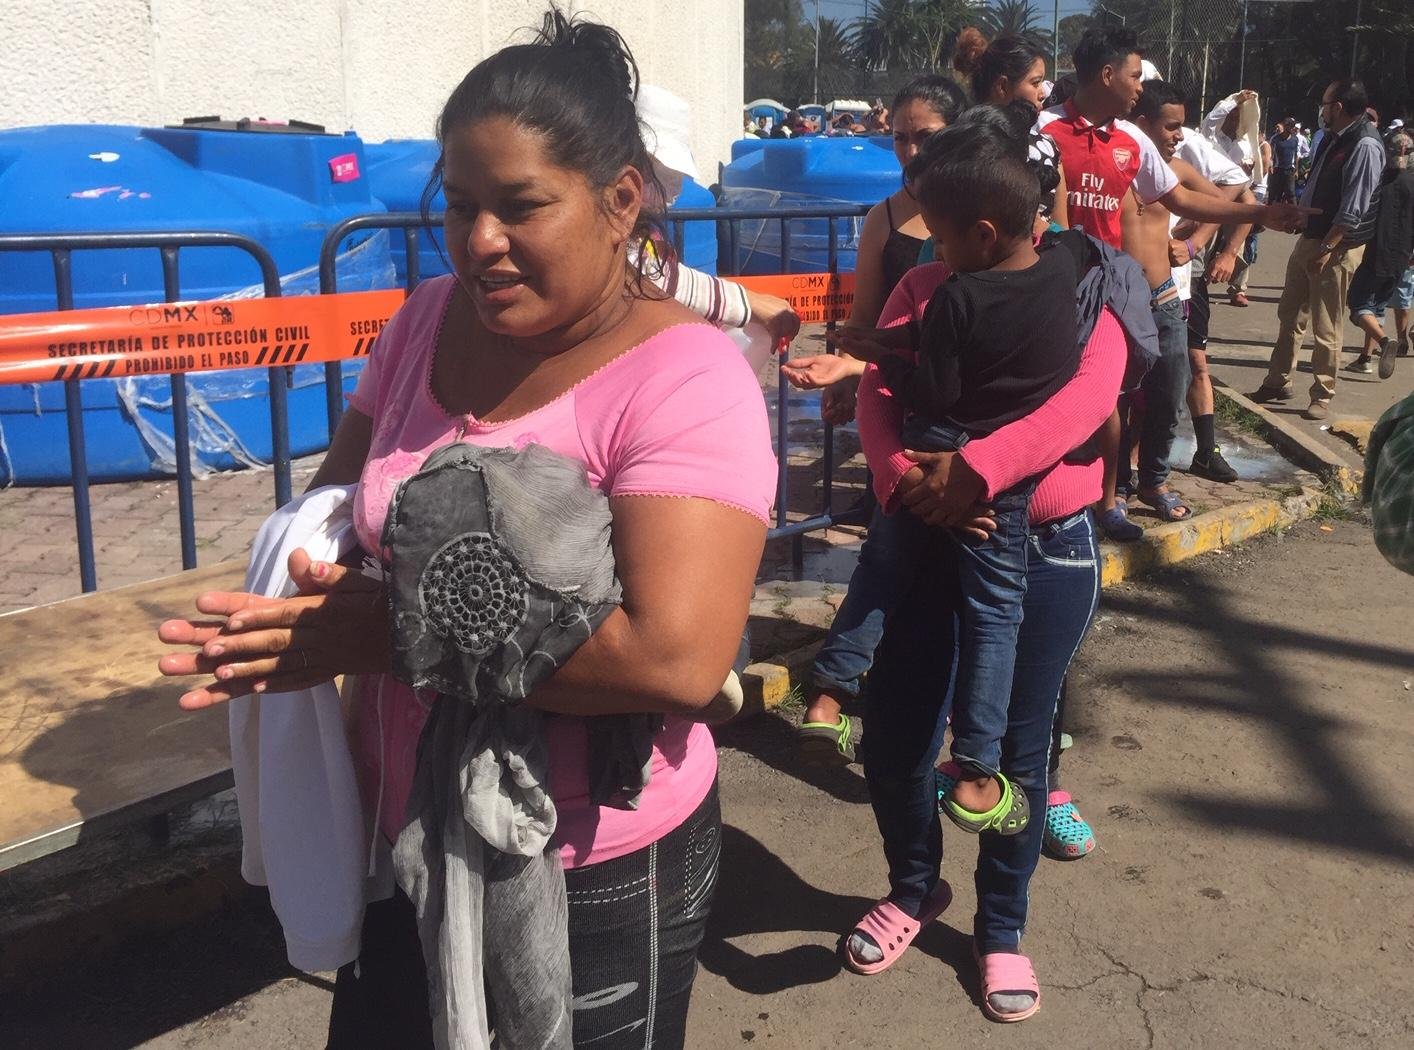 Mothers wait on line to get food for their children at the migrant shelter in Mexico City.